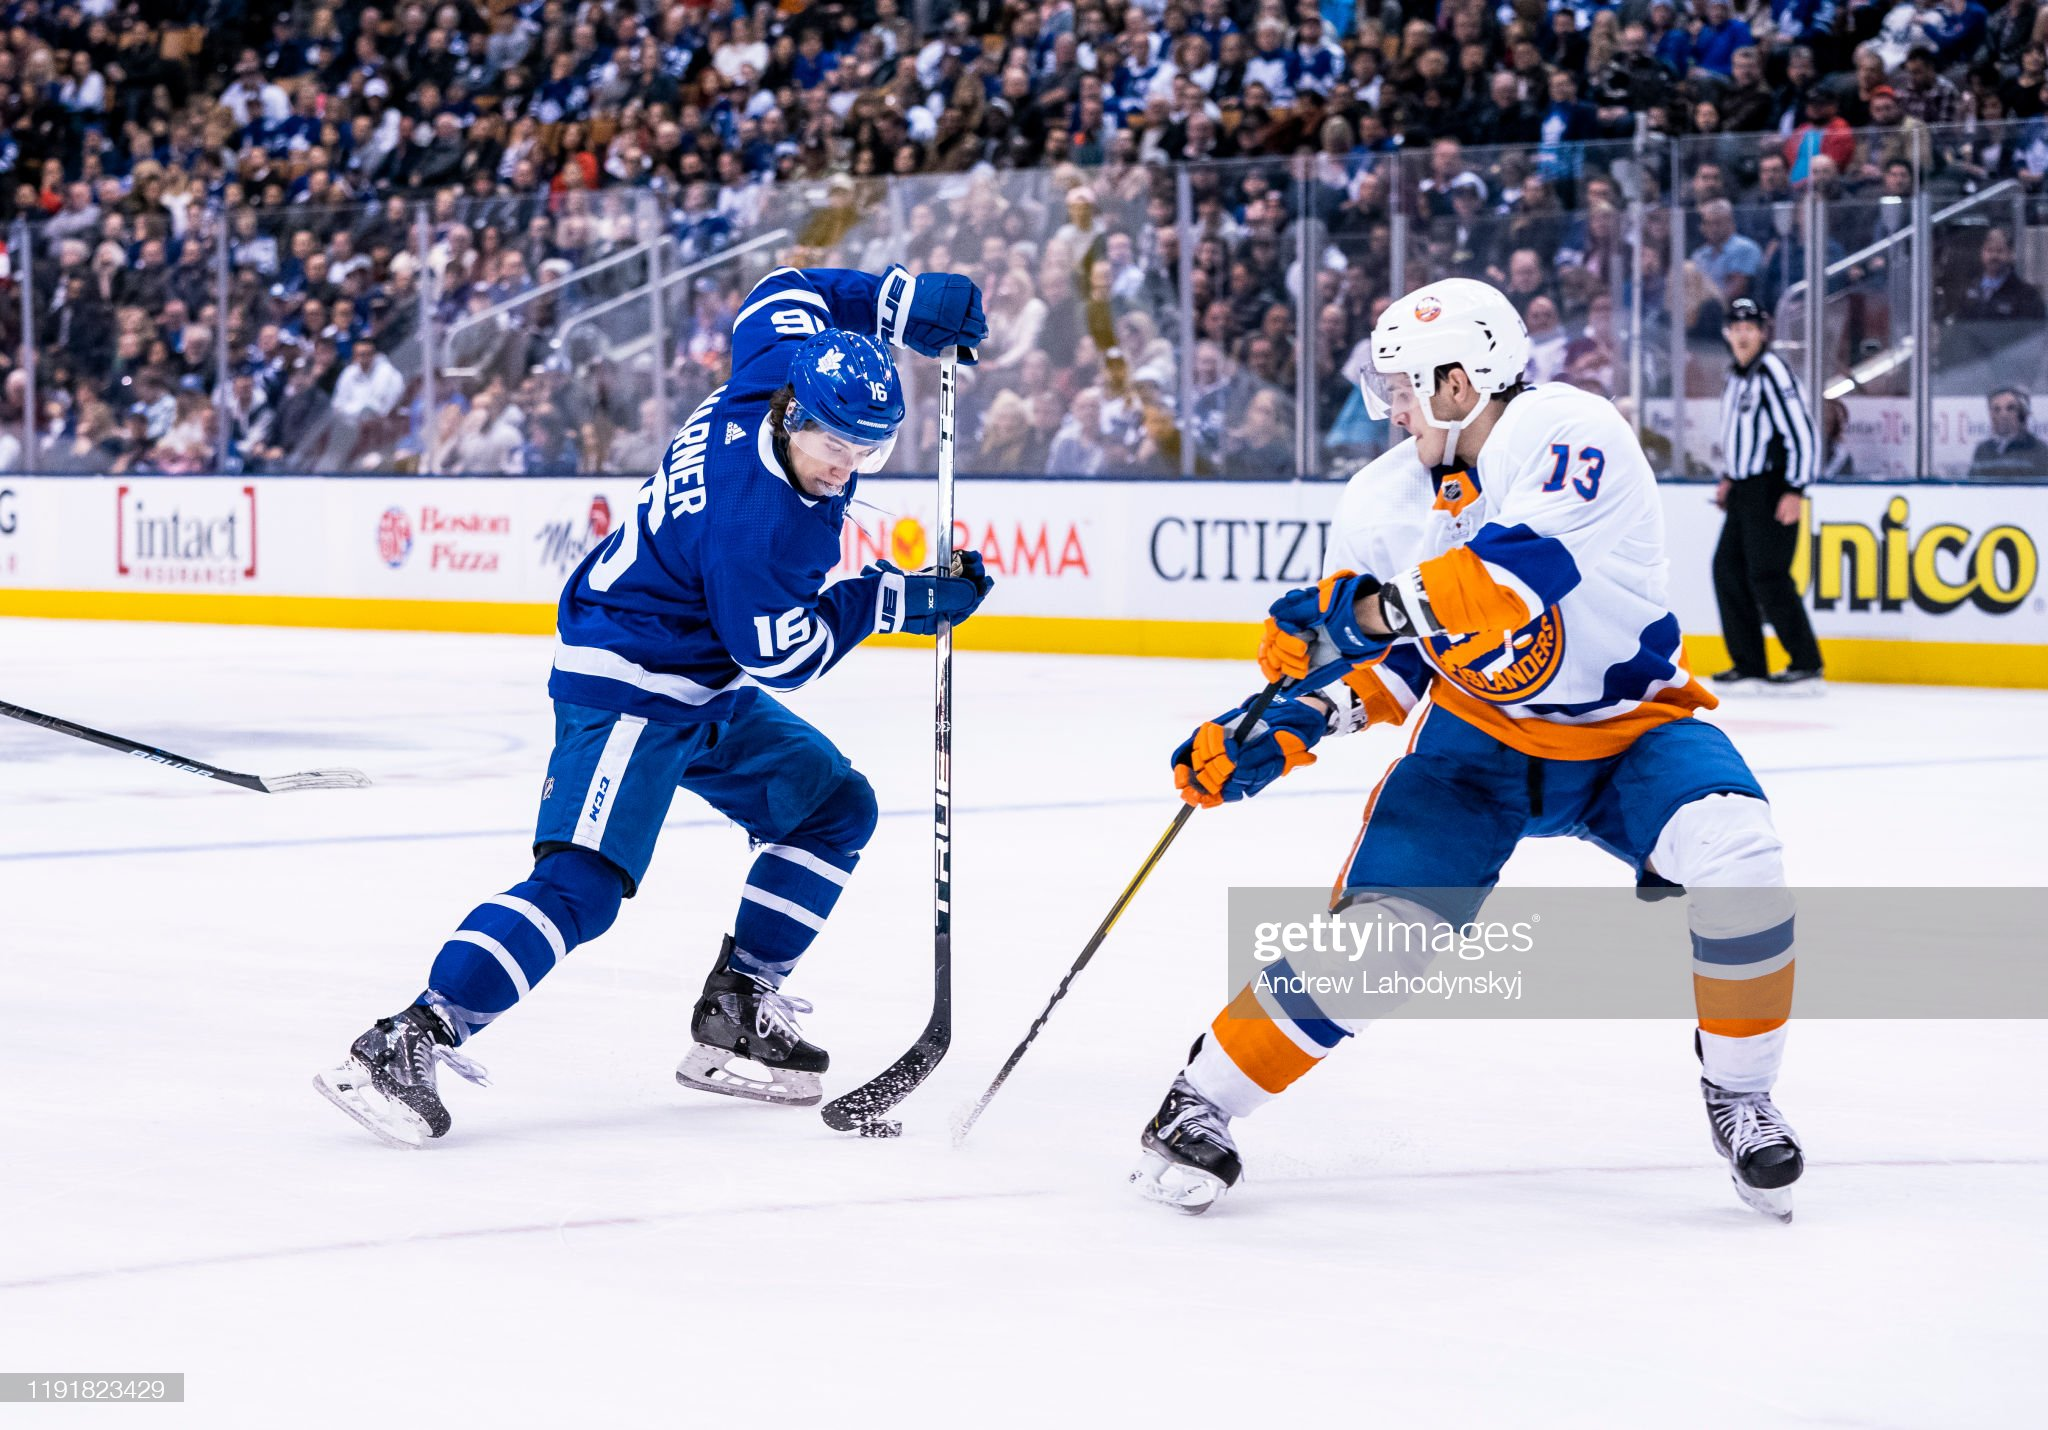 mitch-marner-of-the-toronto-maple-leafs-